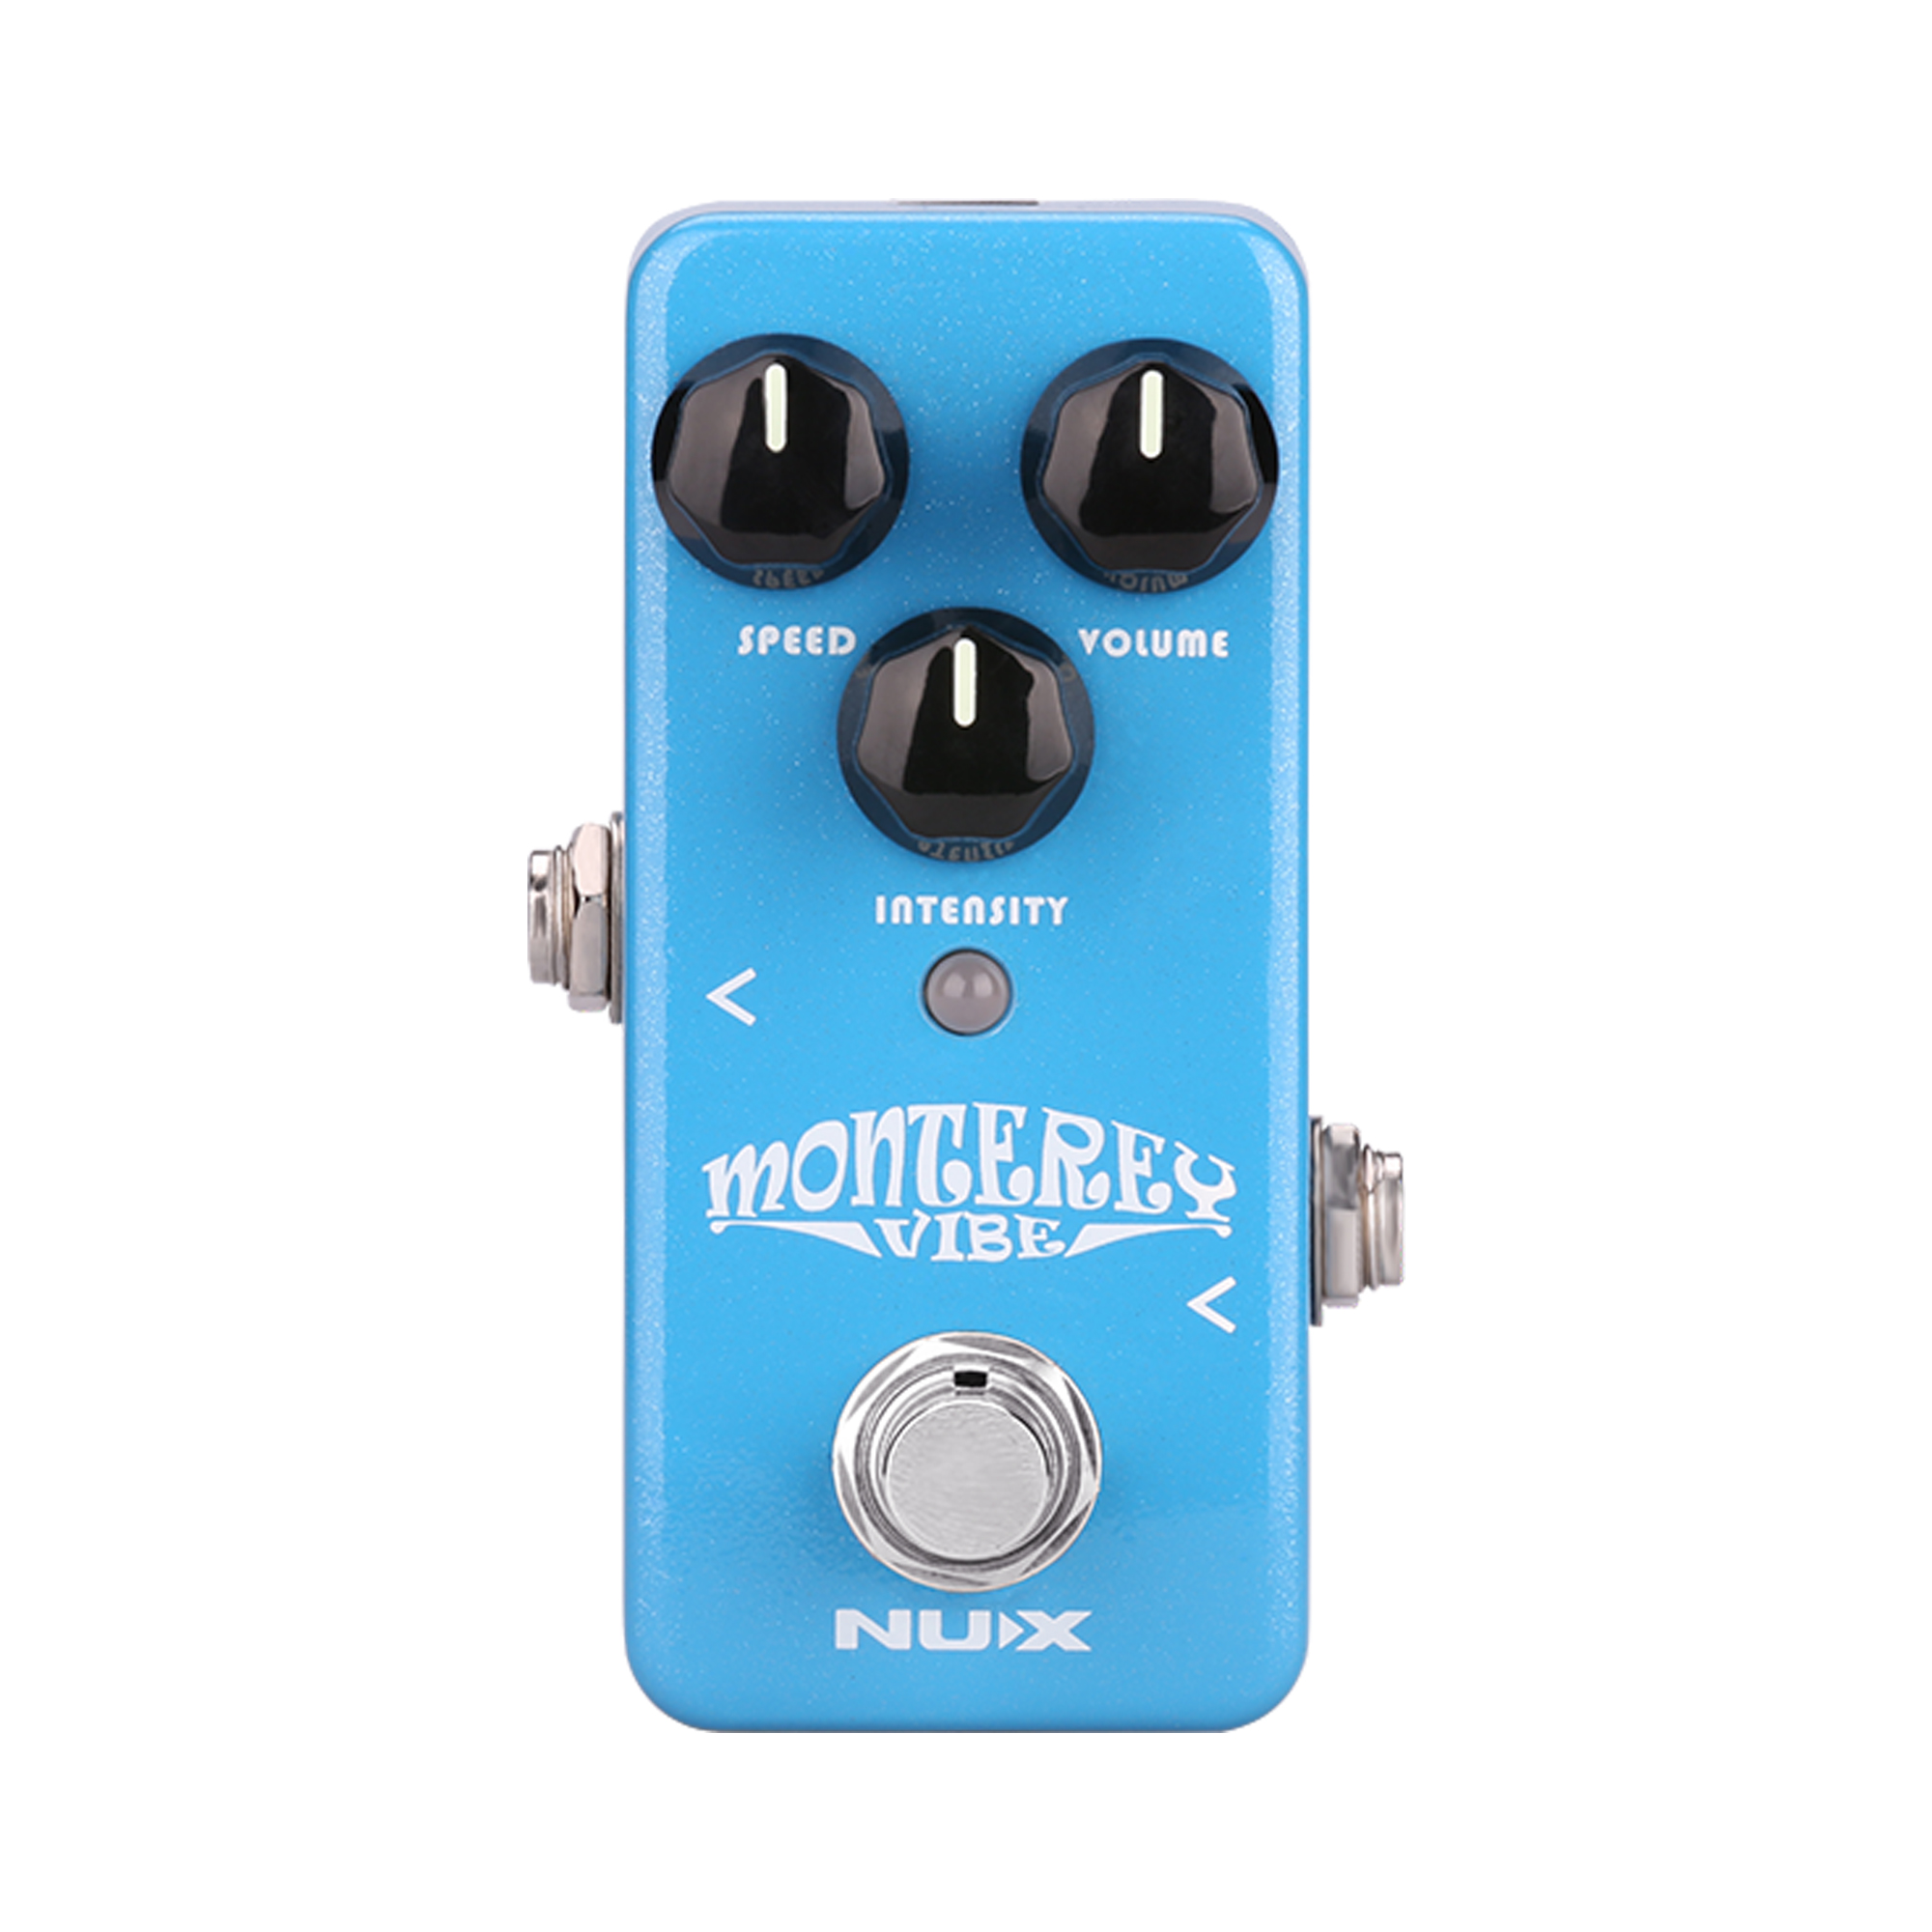 NUX Monterey Vibe Guitar Effect Pedal Mini Core Series Stompbox Chorus Rotary-Speaker Phaser Effects Complex Psychedelic Sound nux pmx 2 multi channel mini mixer 30